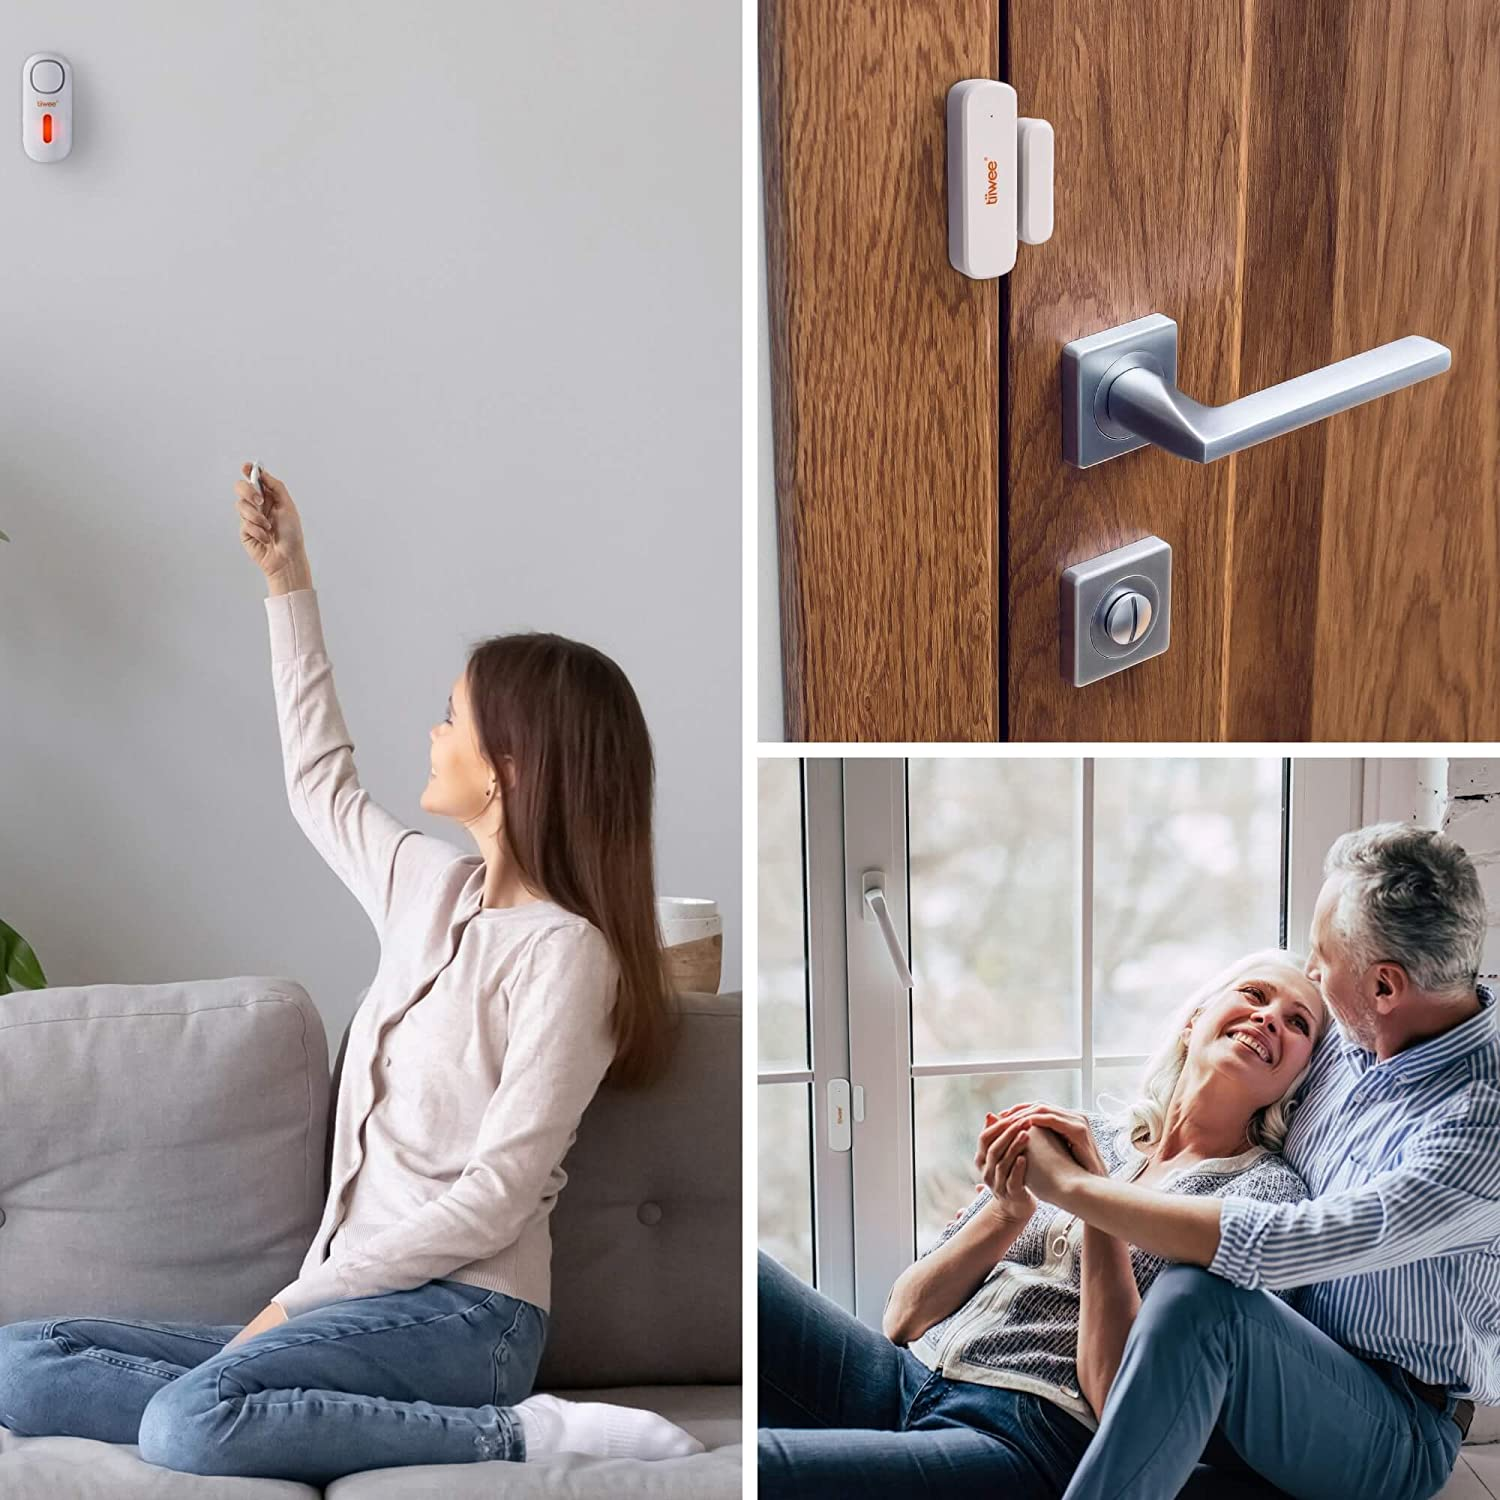 tiiwee A1 Home Alarm System Wireless Kit - 1 Siren, 2 Window & Door Sensors and 1 Remote Control: Amazon.co.uk: DIY & Tools